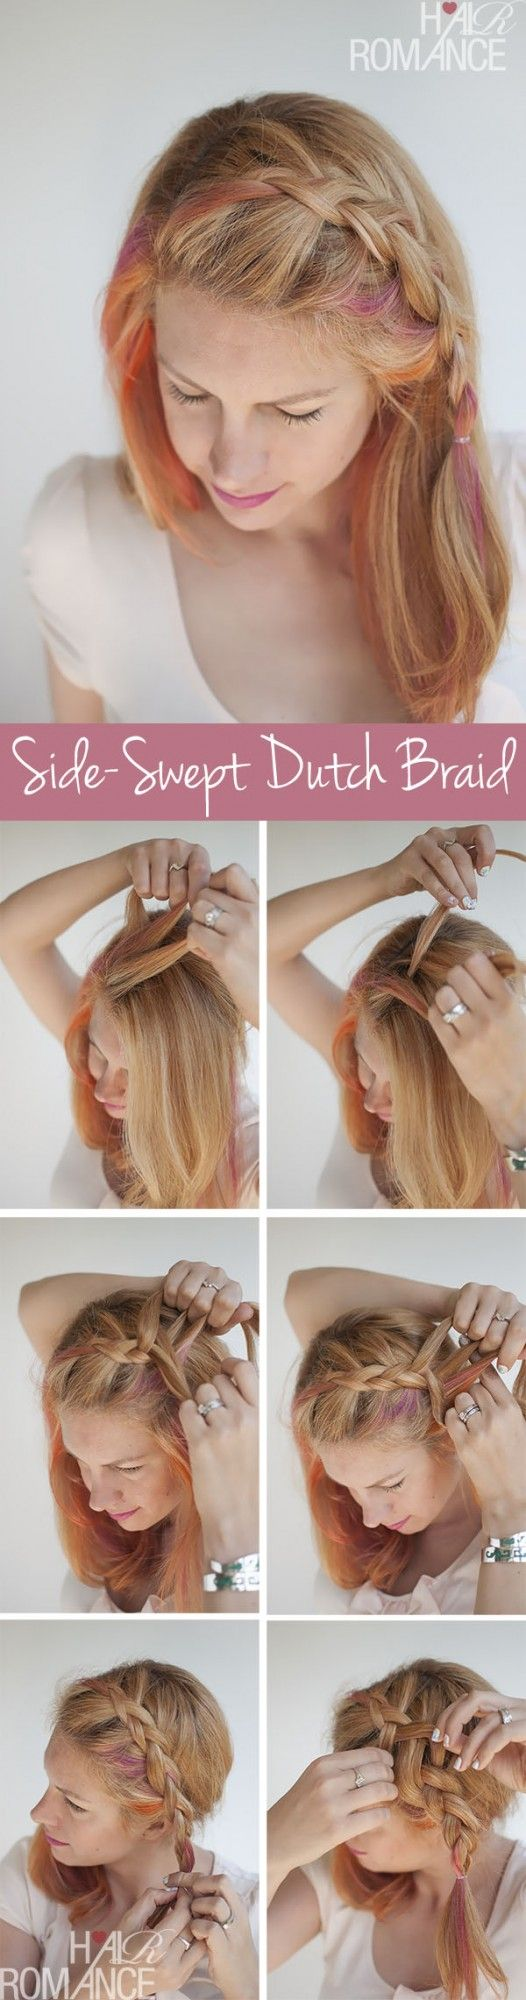 Dutch braid swept to the side